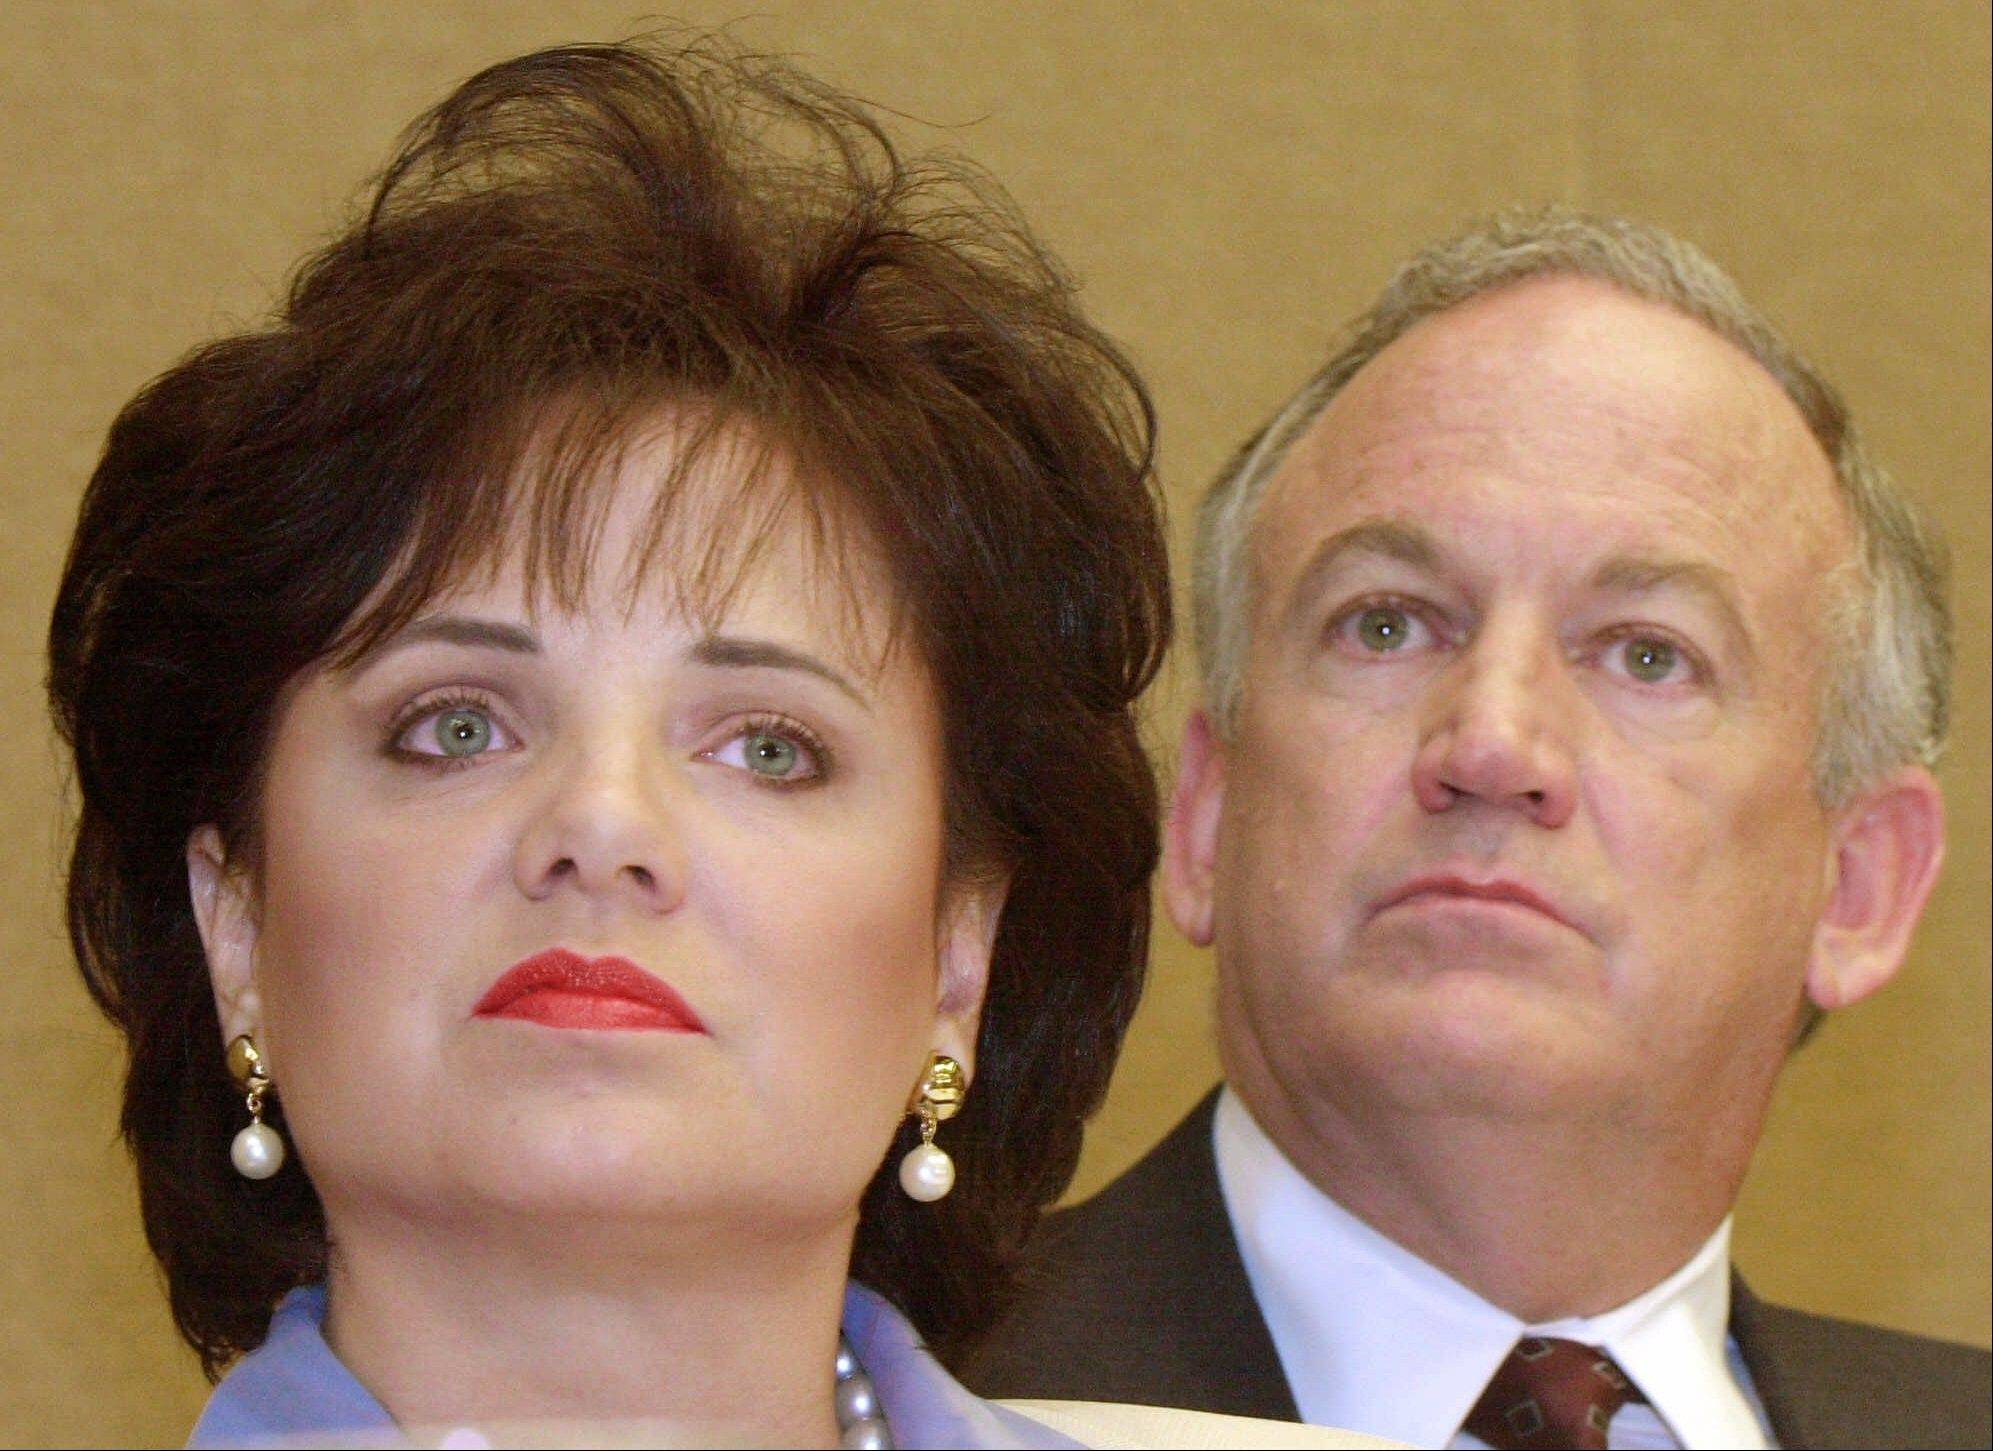 In this May 24, 2000 photo, Patsy Ramsey and her husband, John, parents of JonBenet Ramsey, during a news conference in Atlanta regarding their lie-detector examinations for the murder of their daughter.